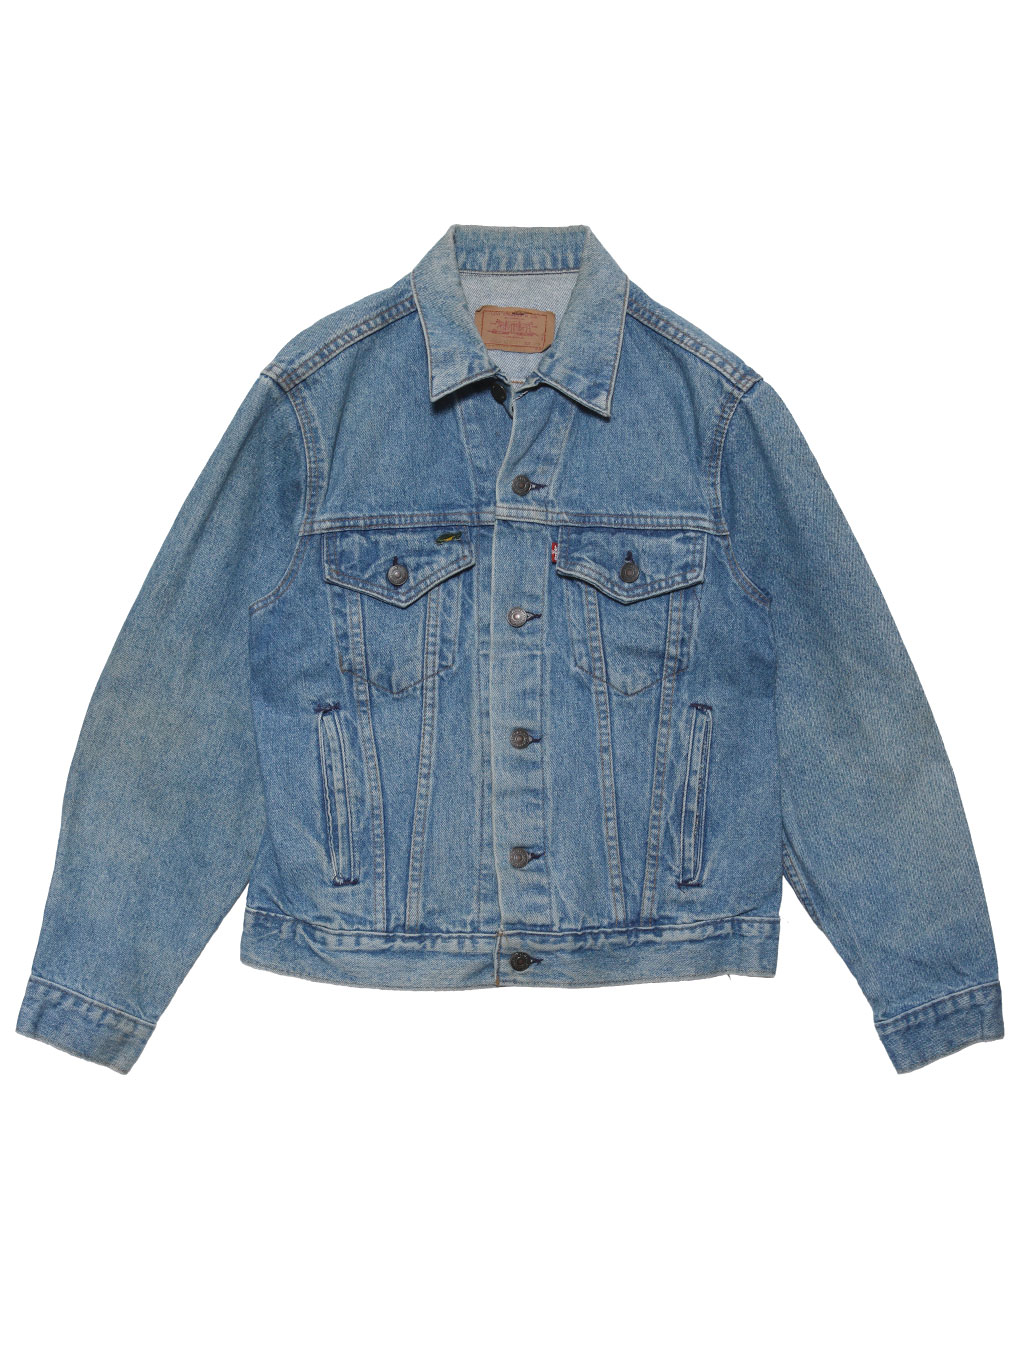 VINTAGE/DENIM JACKET LEVI`S